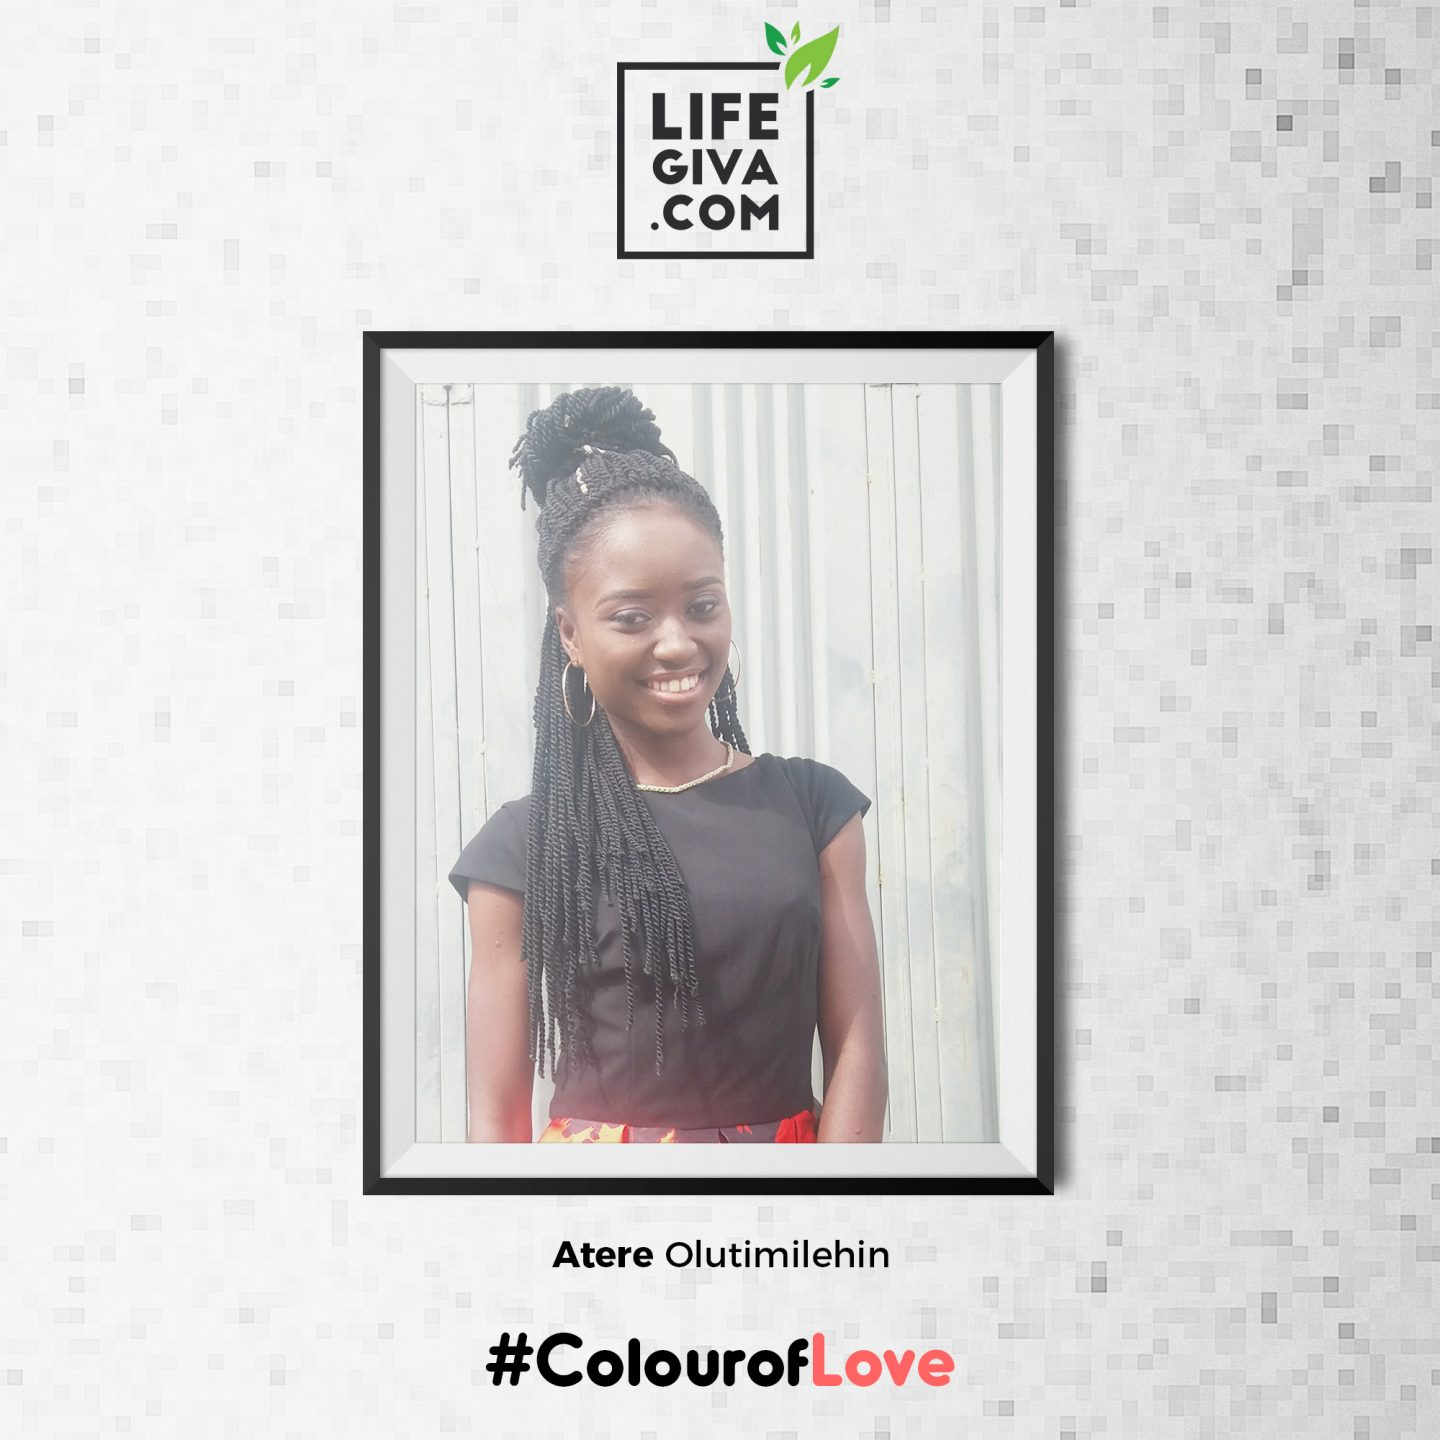 All for Love - Atere Oluwatimilehin #ColourOfLove